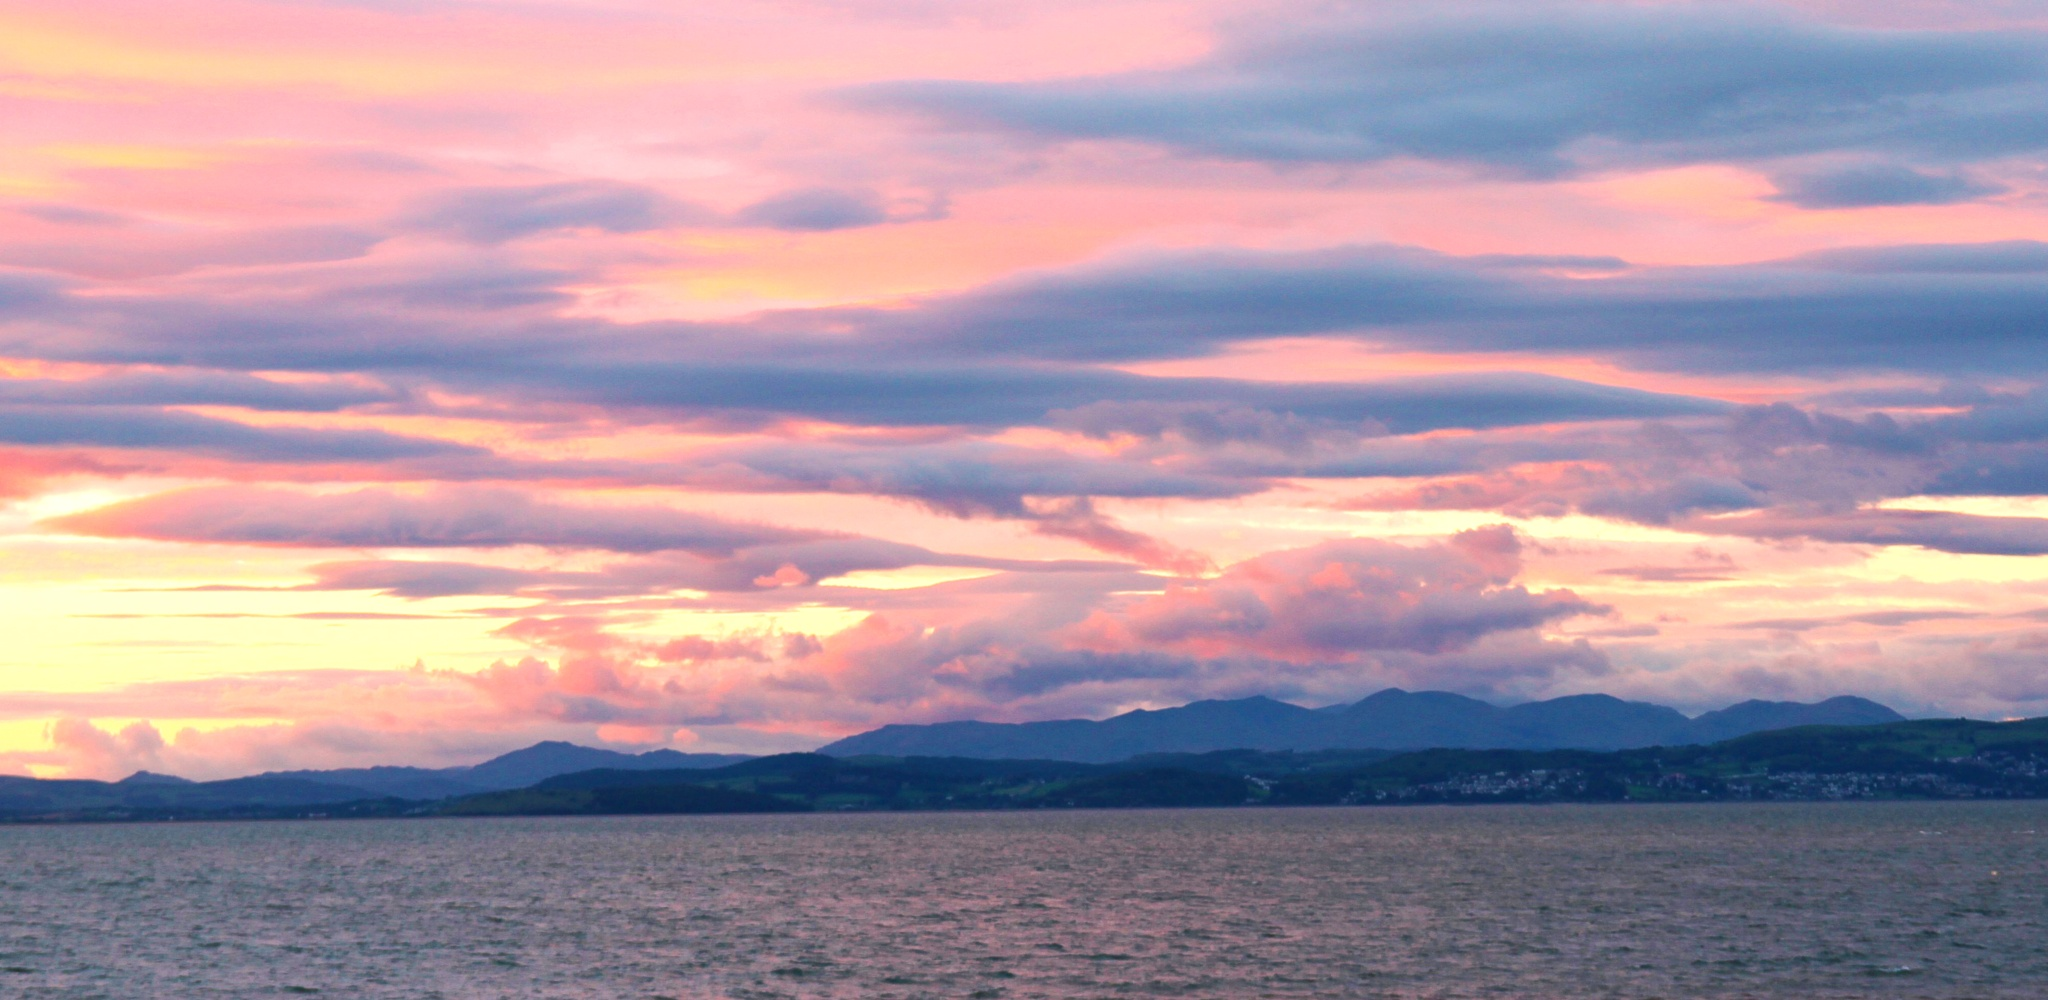 sunset sky over morecambe bay by steveworrll